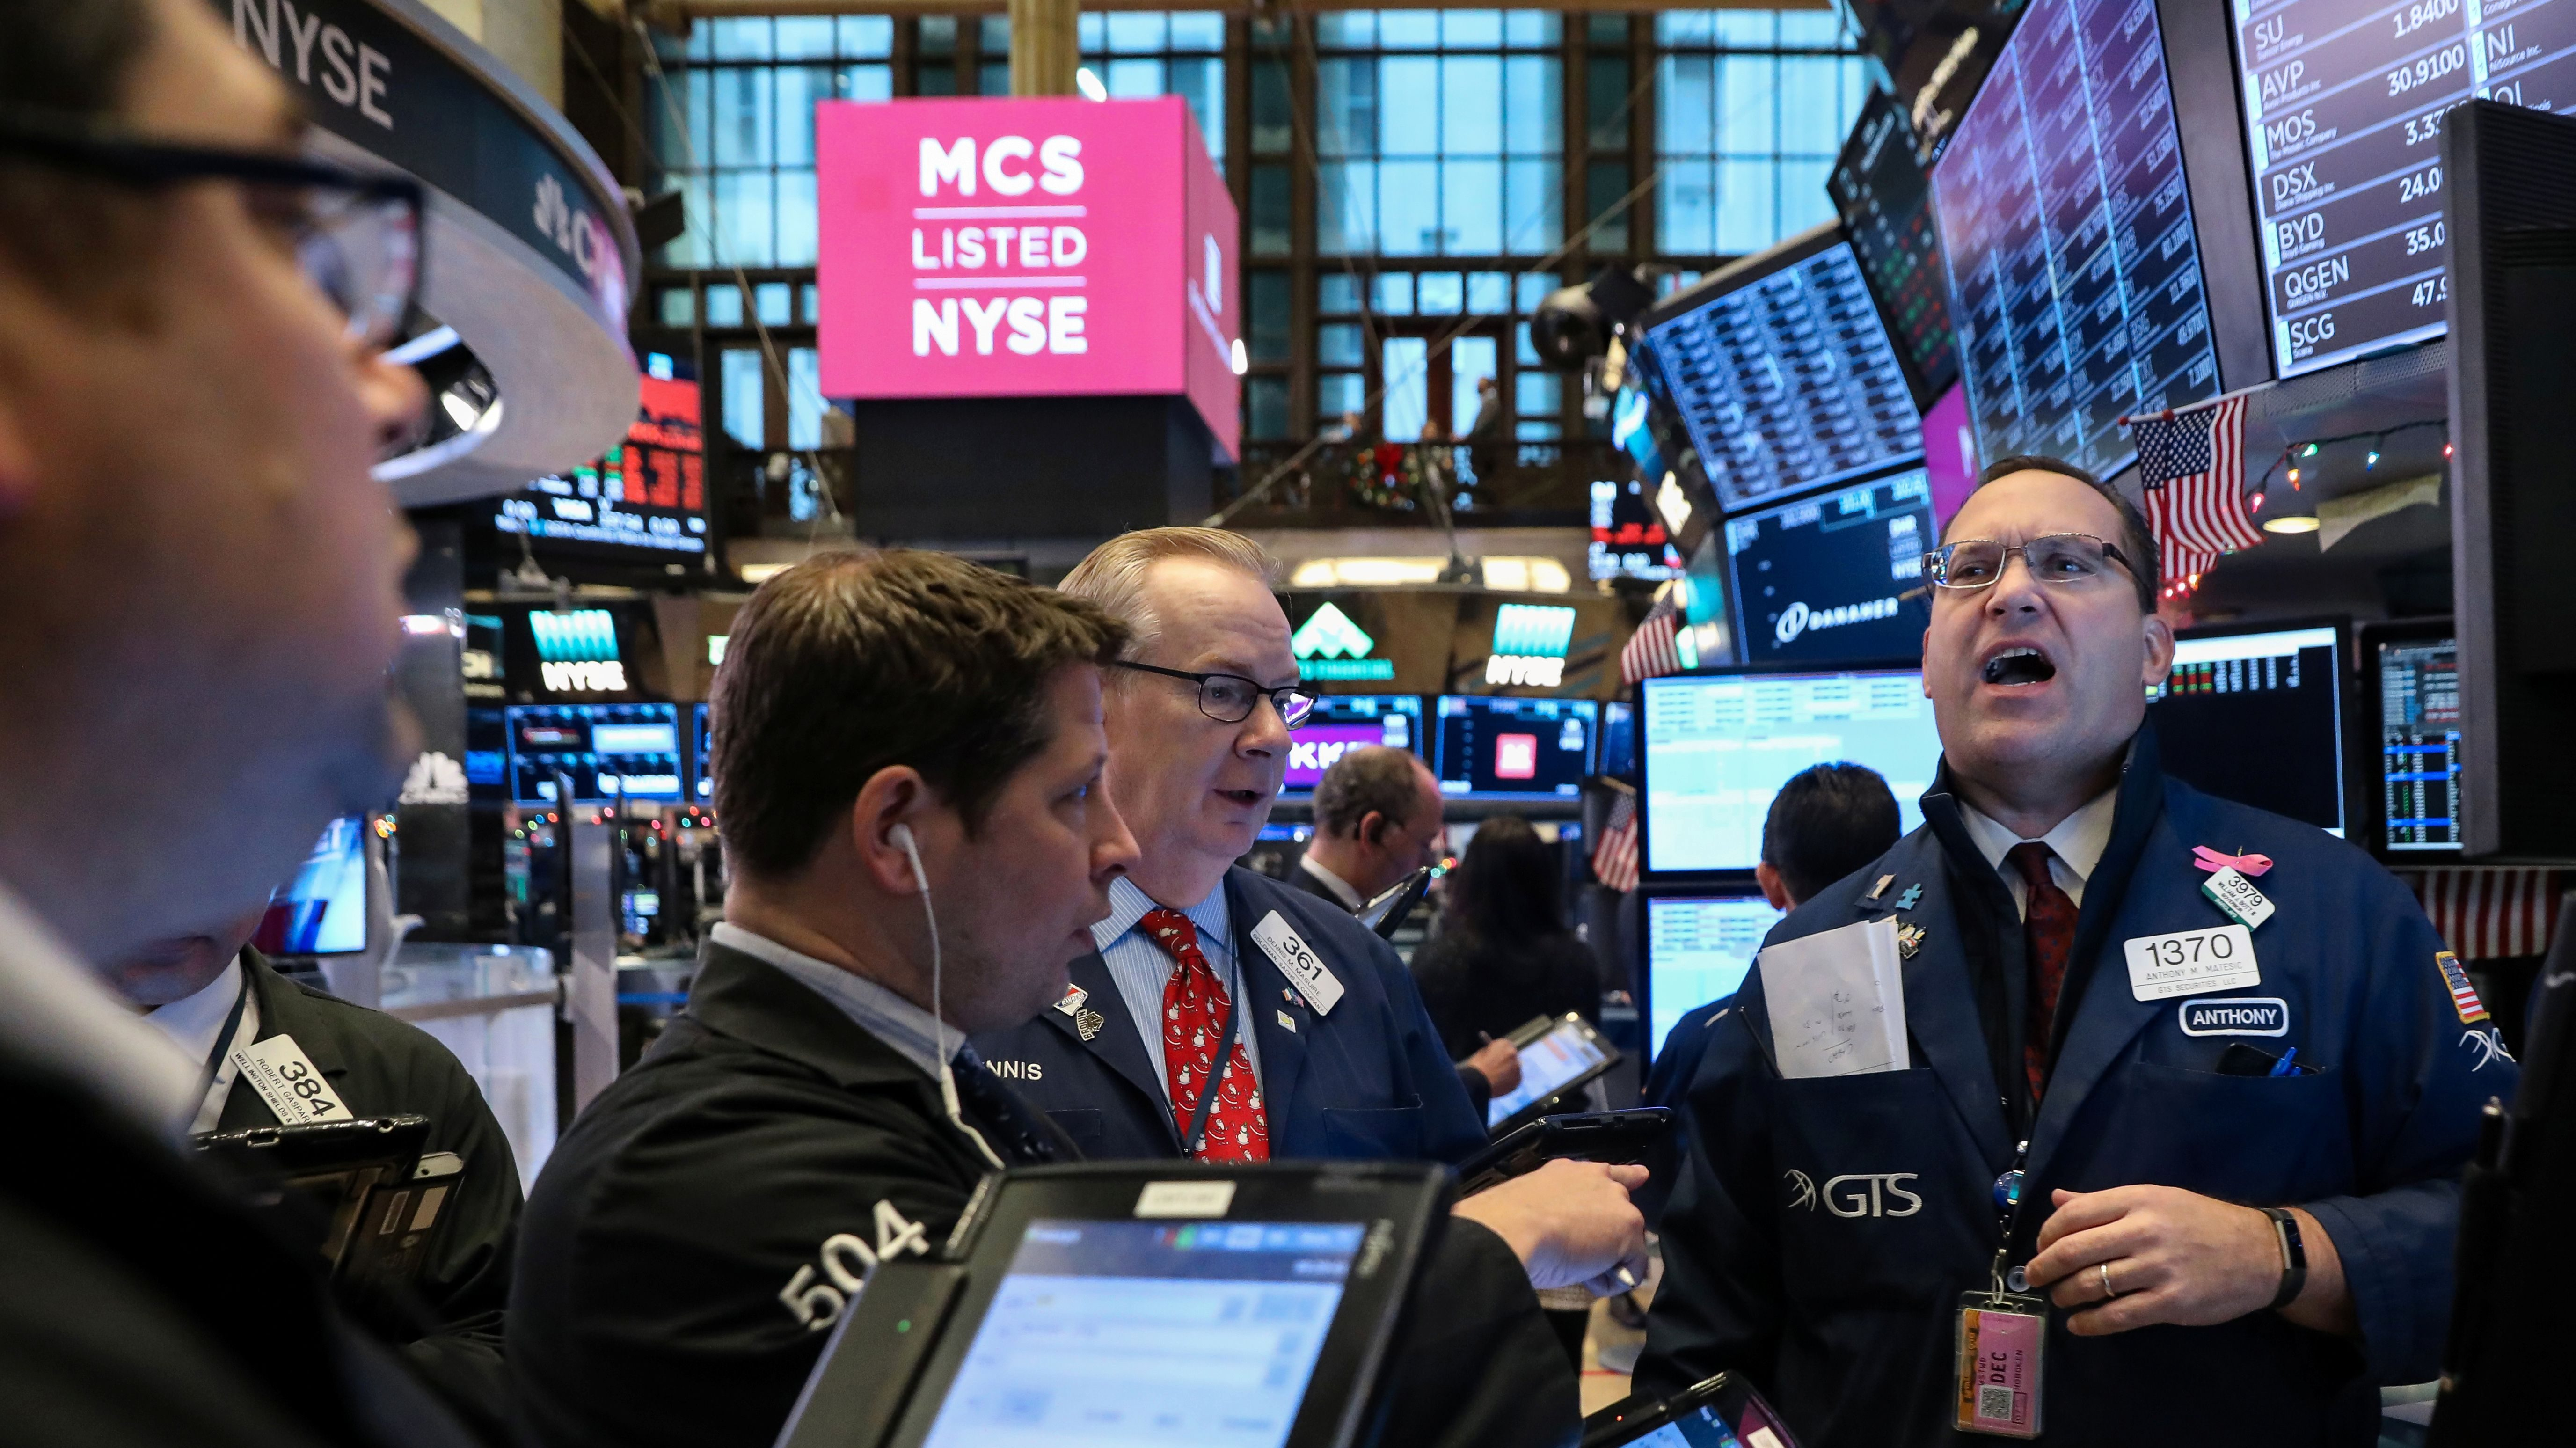 Traders work on the floor of the New York Stock Exchange (NYSE) in New York, U.S., December 14, 2018. REUTERS/Brendan McDermid - RC138B477310